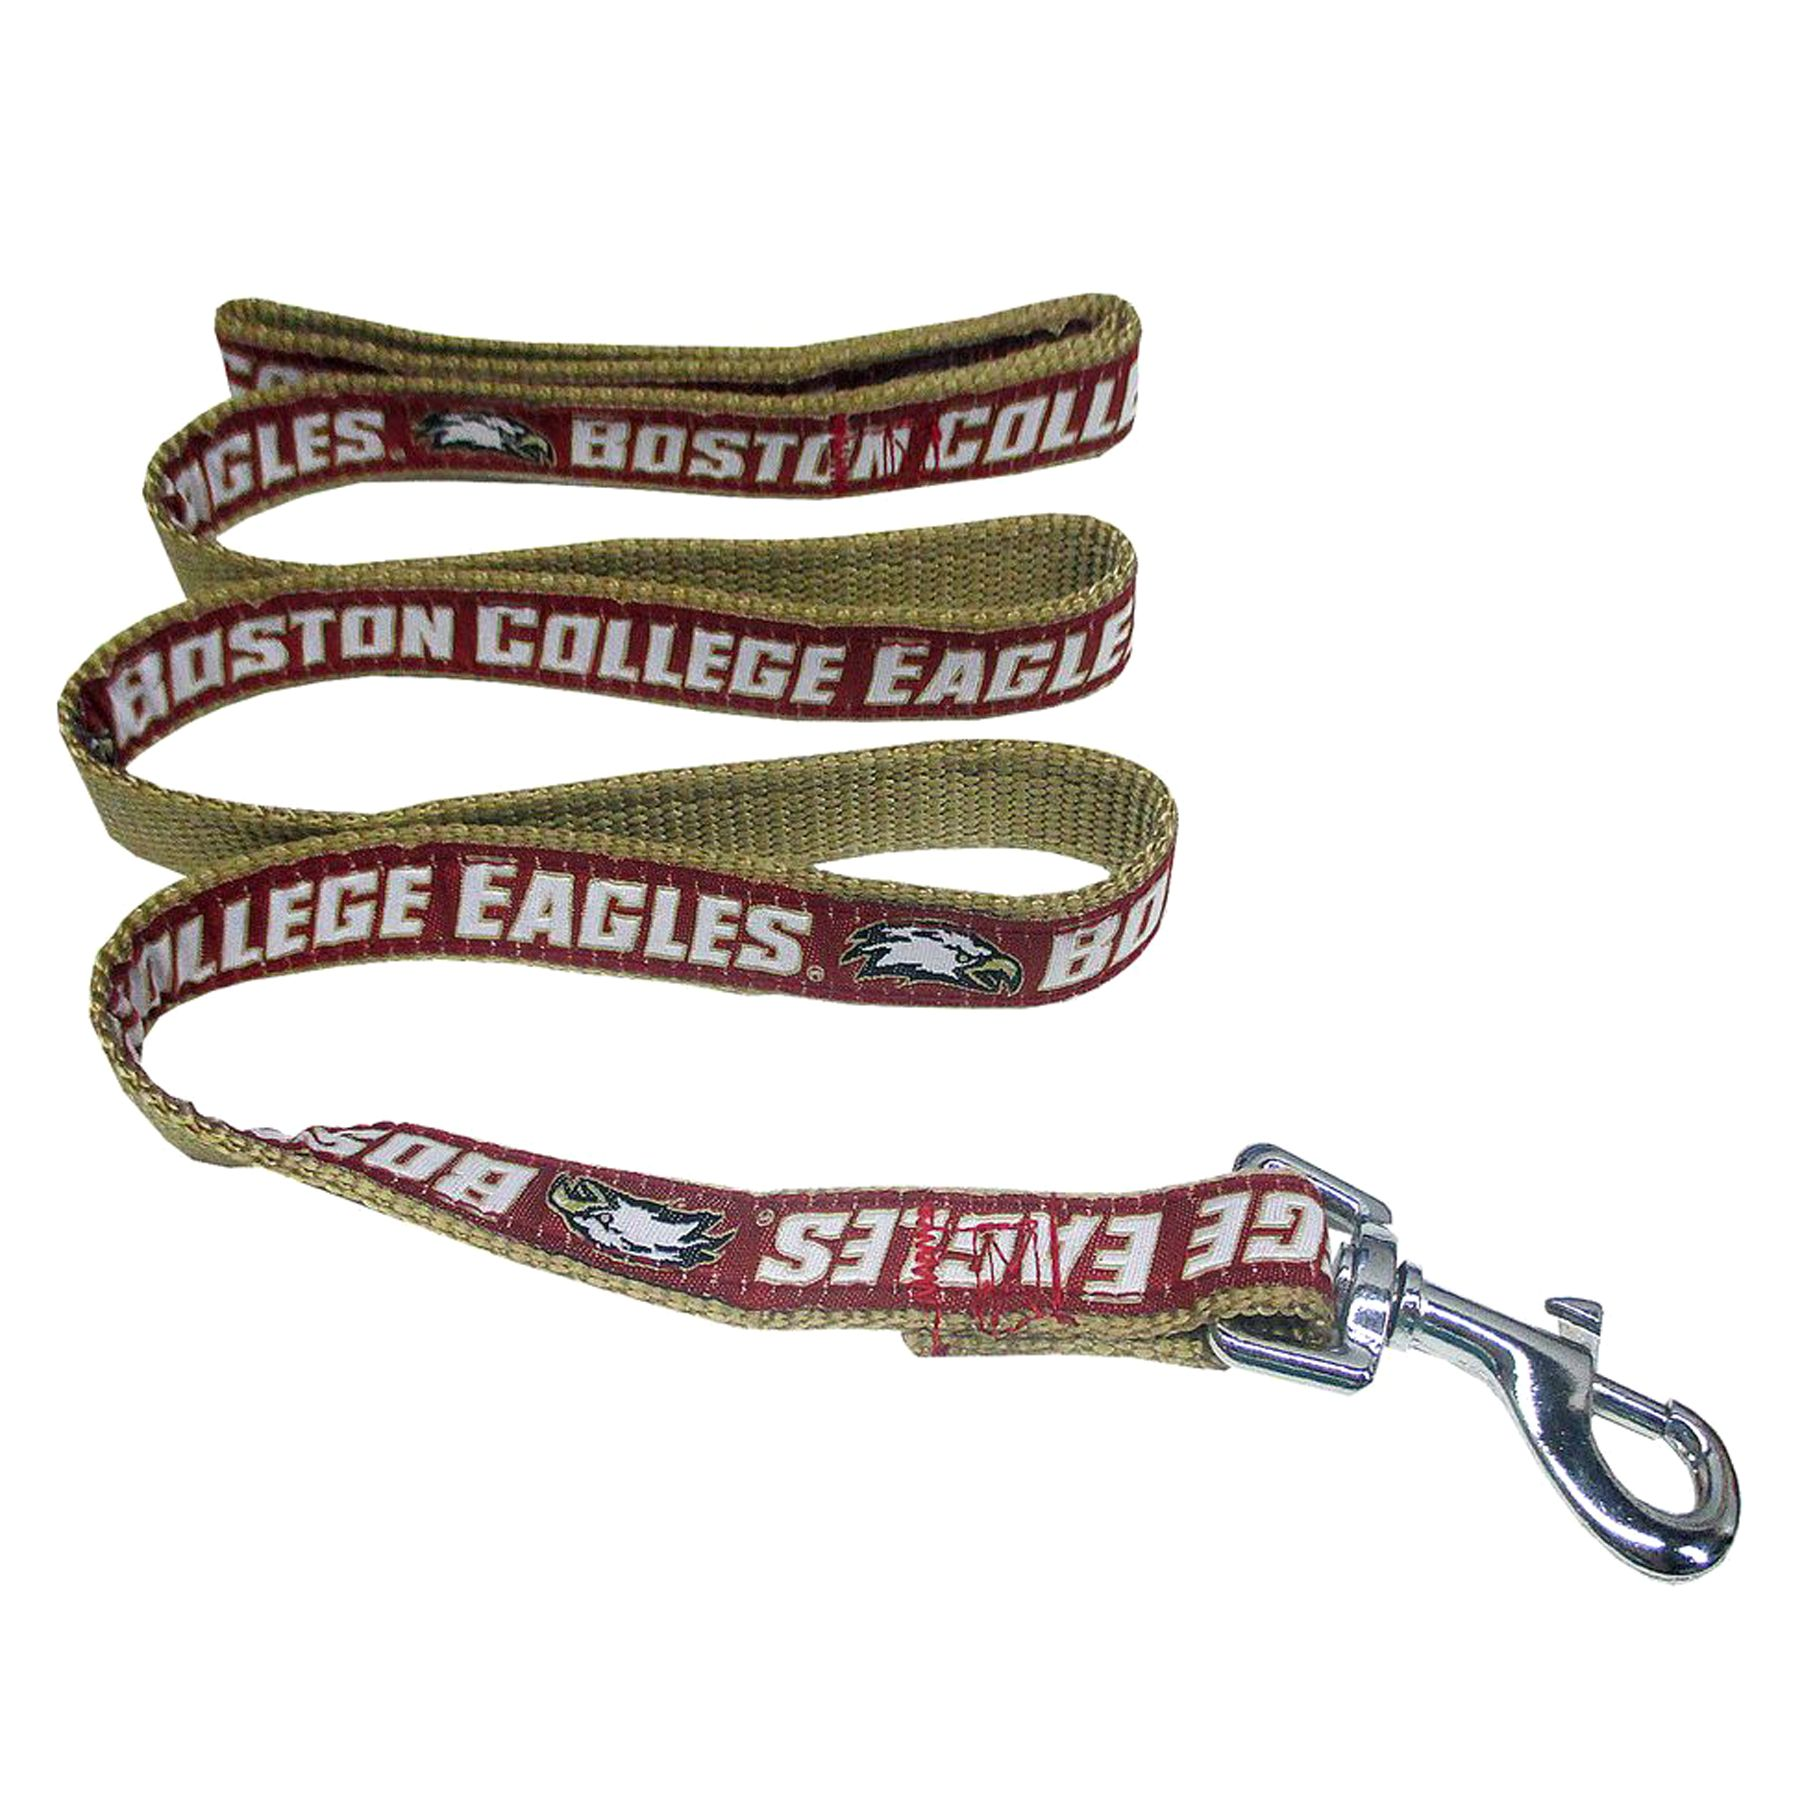 Boston College Eagles Ncaa Dog Leash size: Large, Pets First 5242937